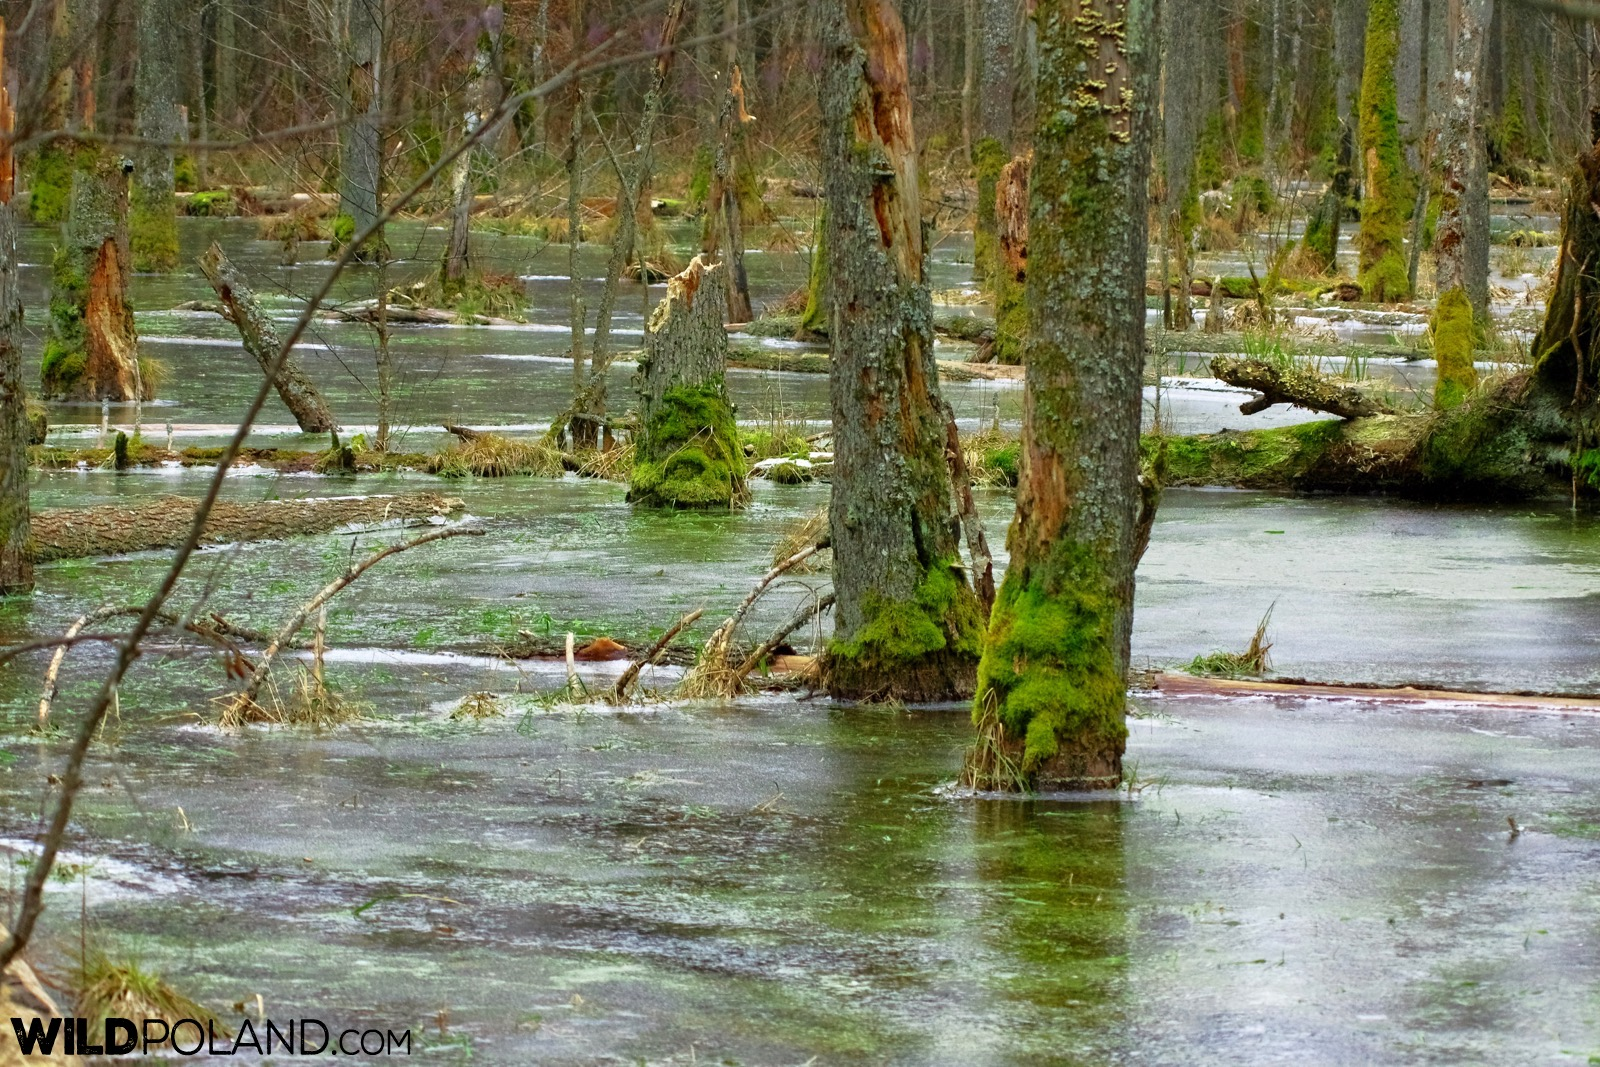 High water levels in the Białowieża Forest, photo by Andrzej Petryna